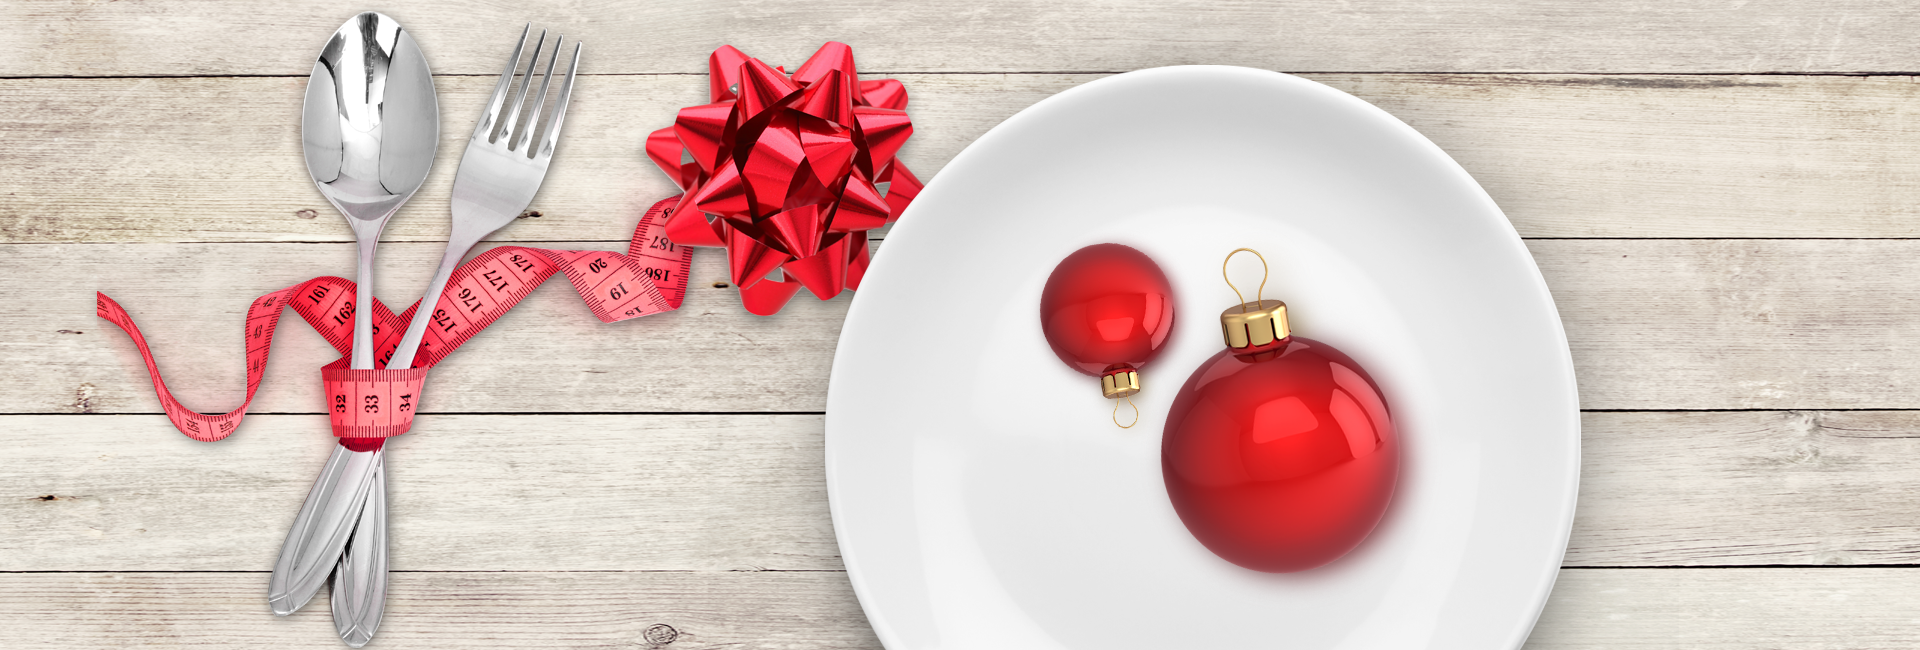 6 ways to prevent holiday overeating